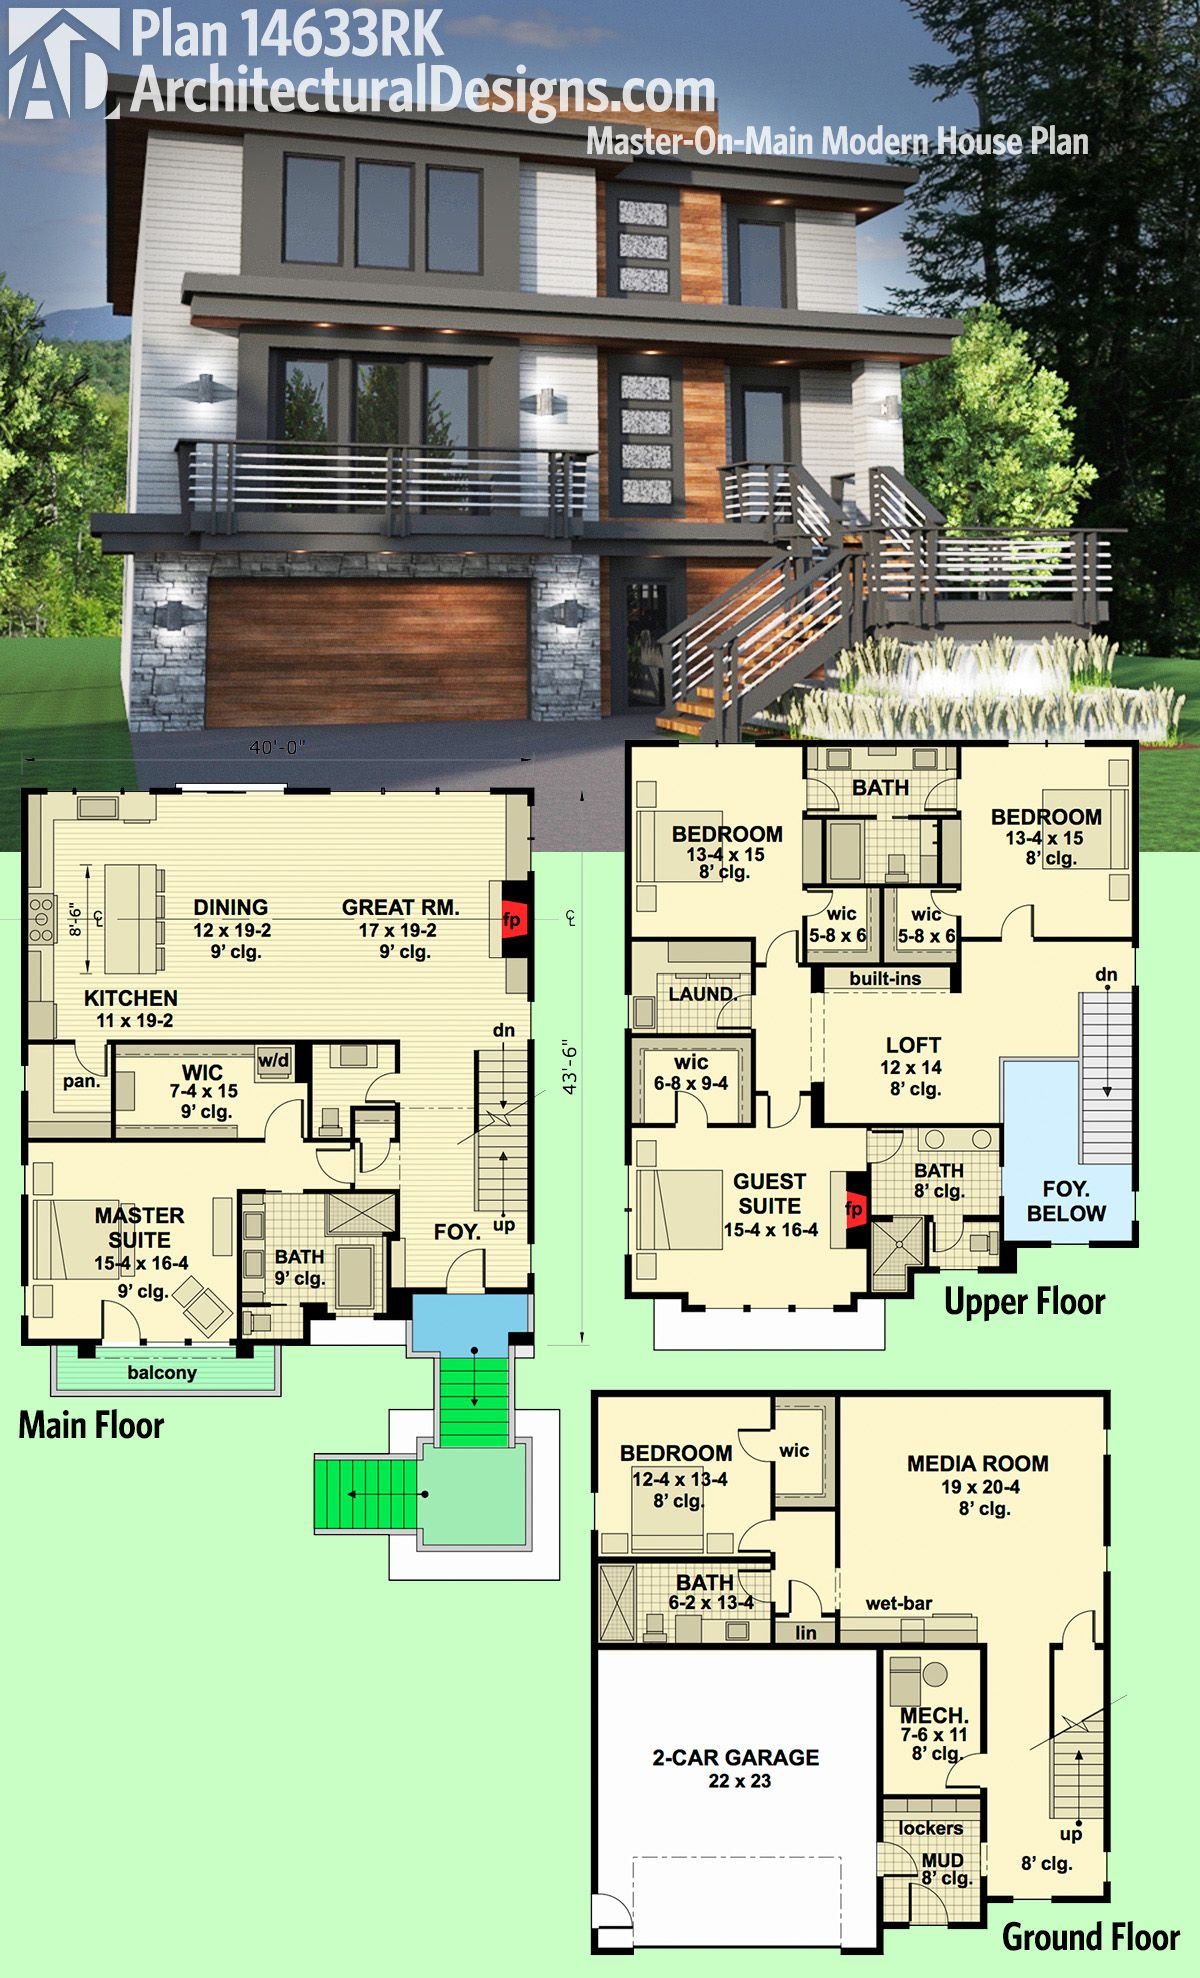 Plan 14633rk master on main modern house plan modern for New house floor plans